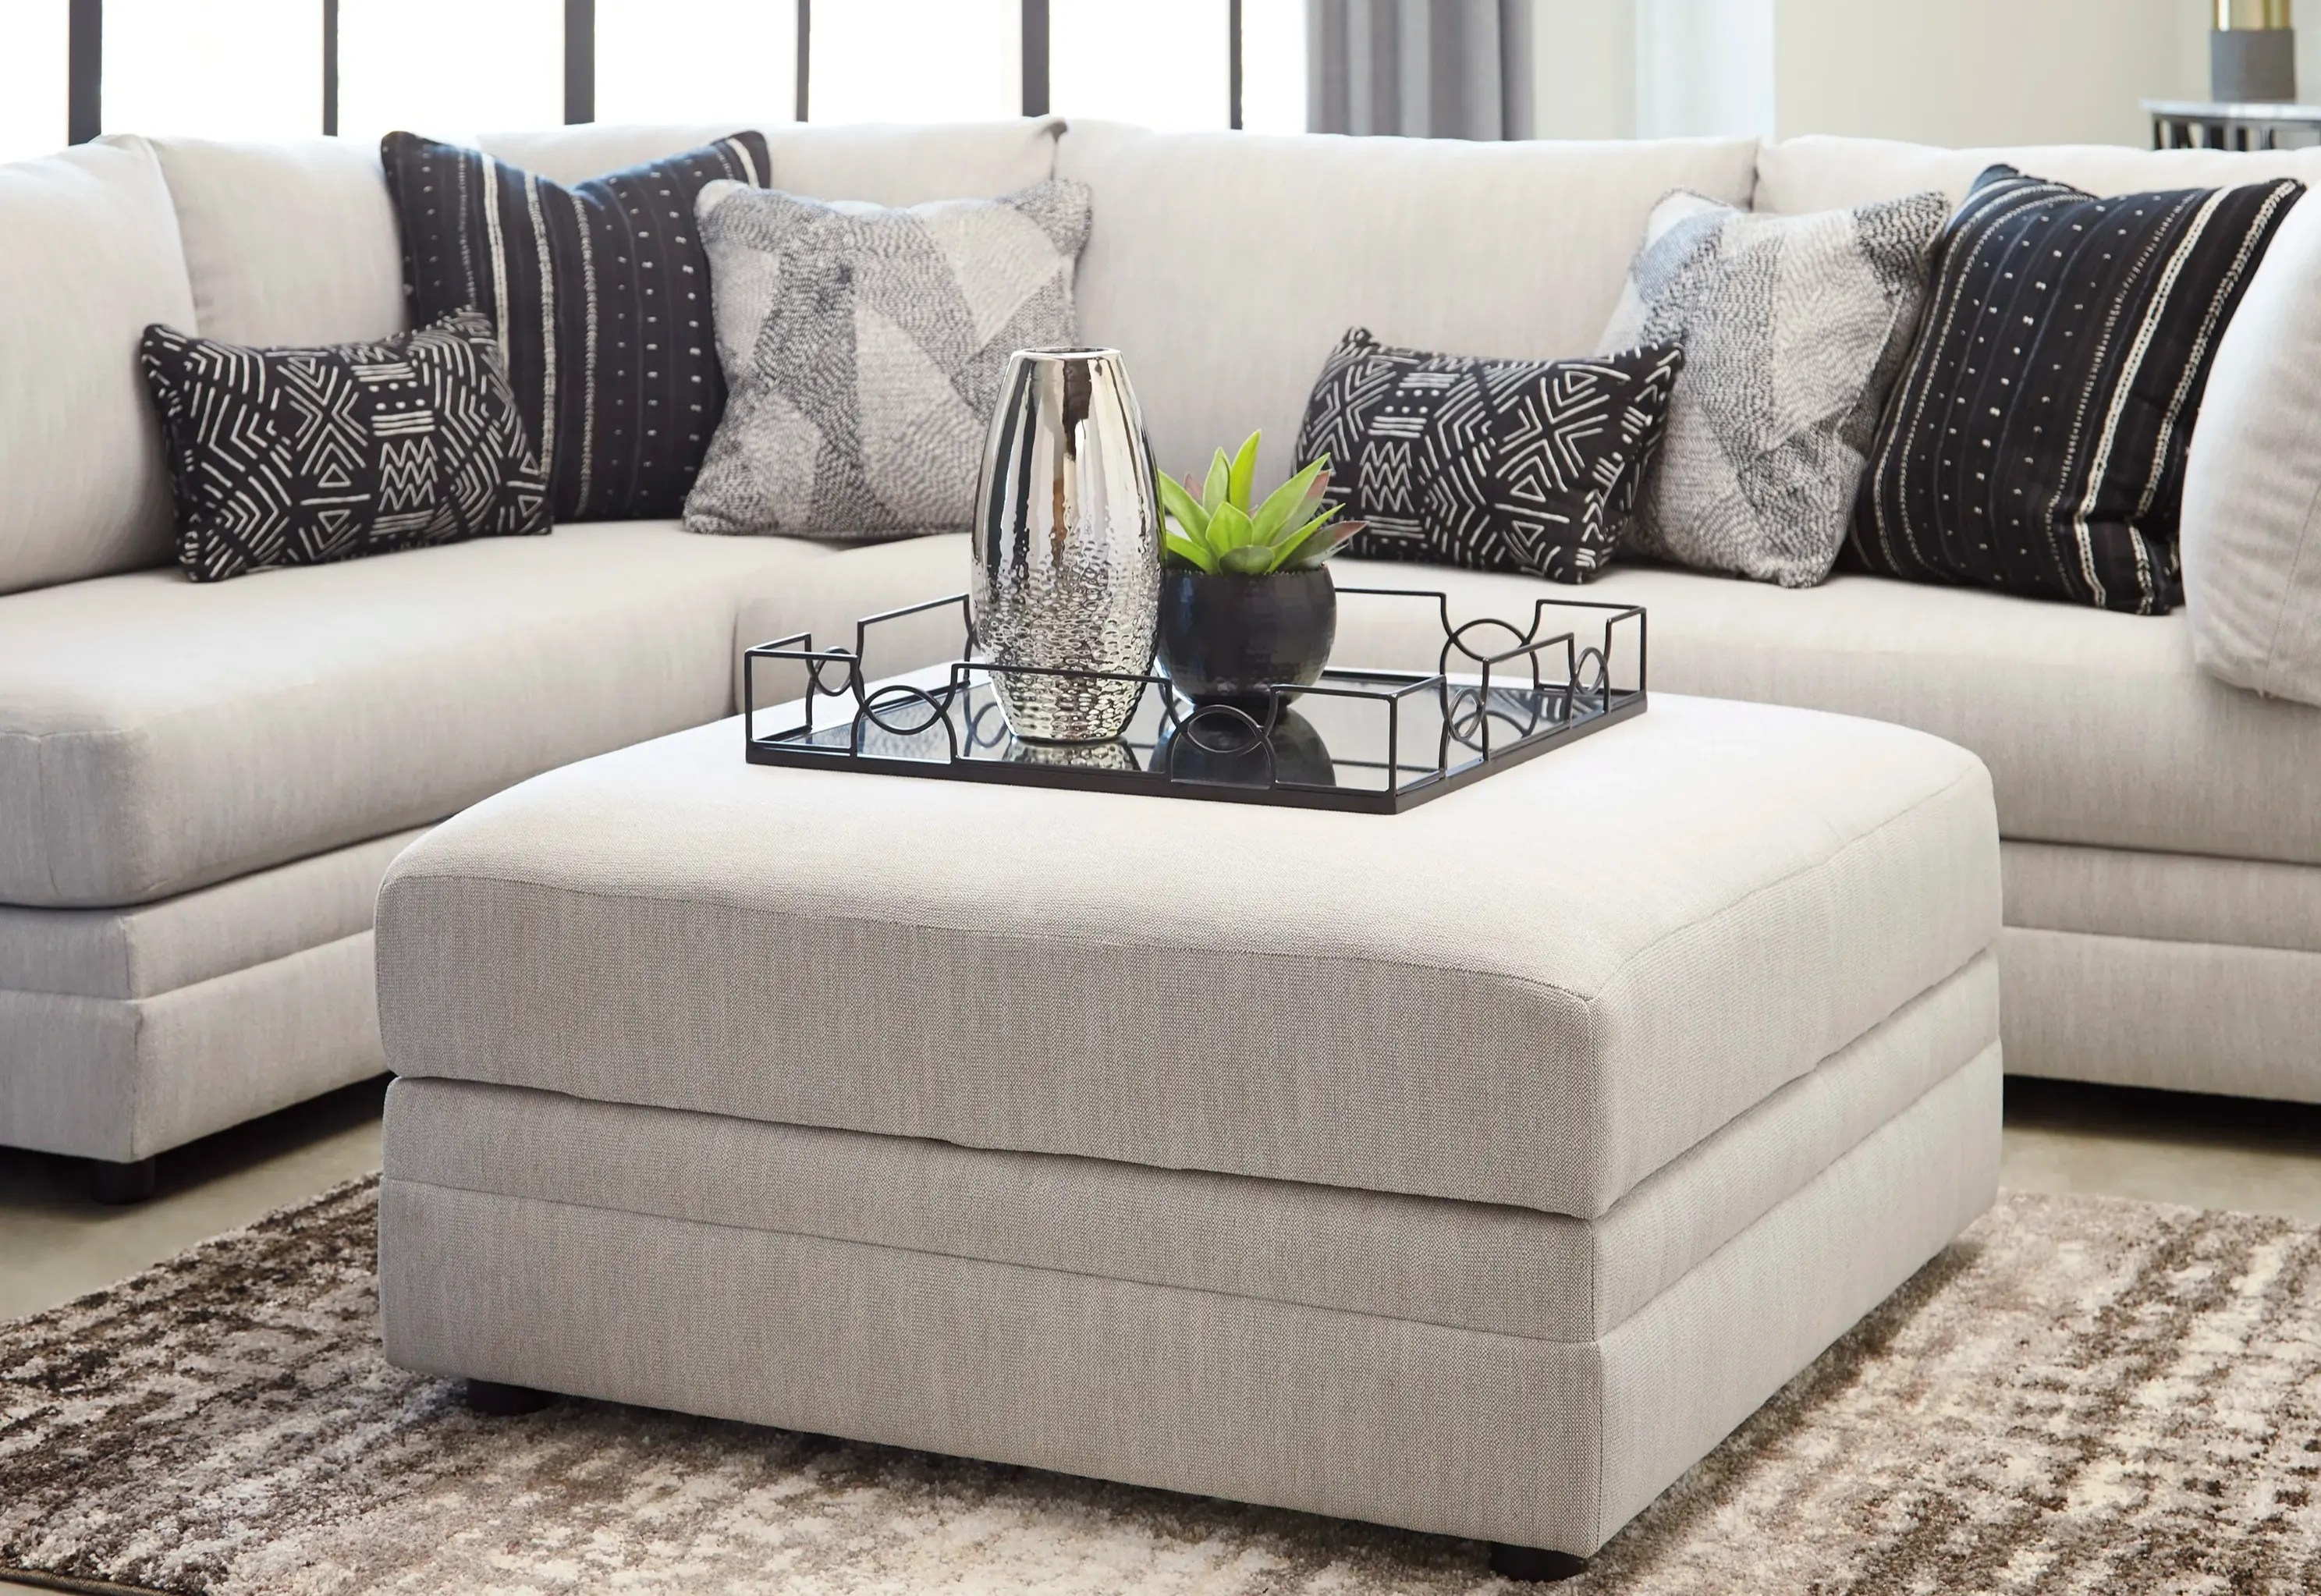 ottoman style guide ashley homestore